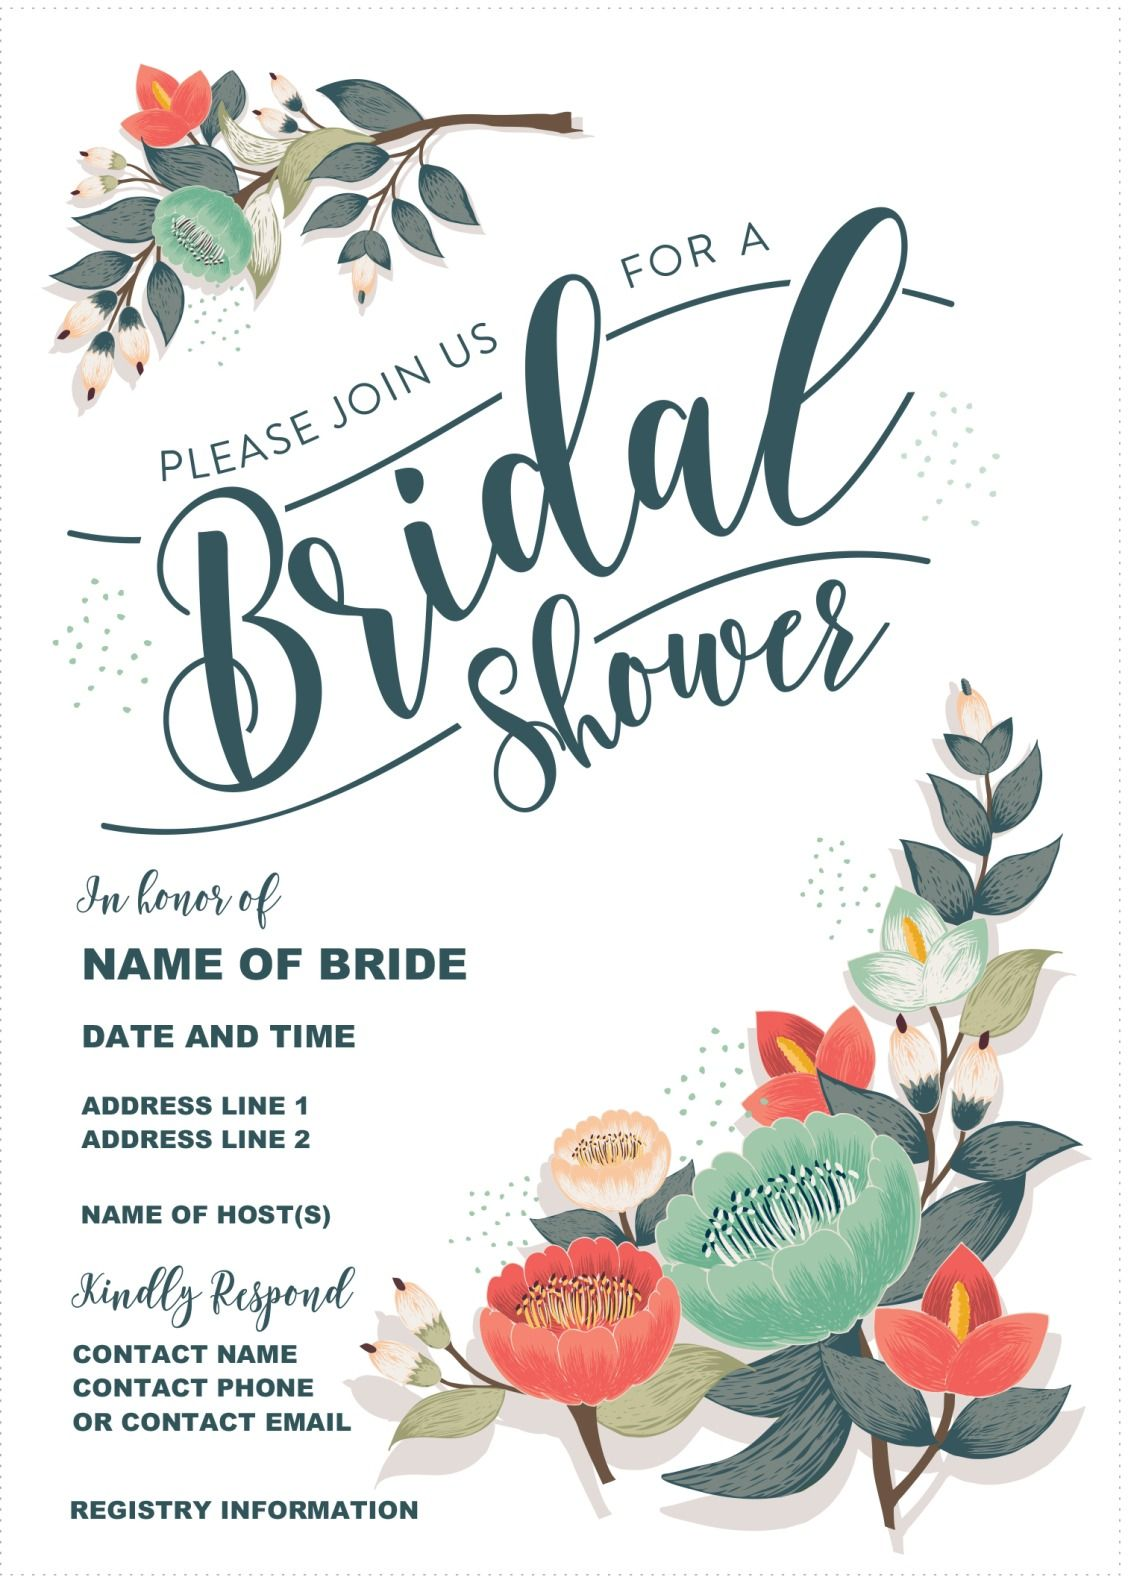 Hilaire image intended for free printable bridal shower templates